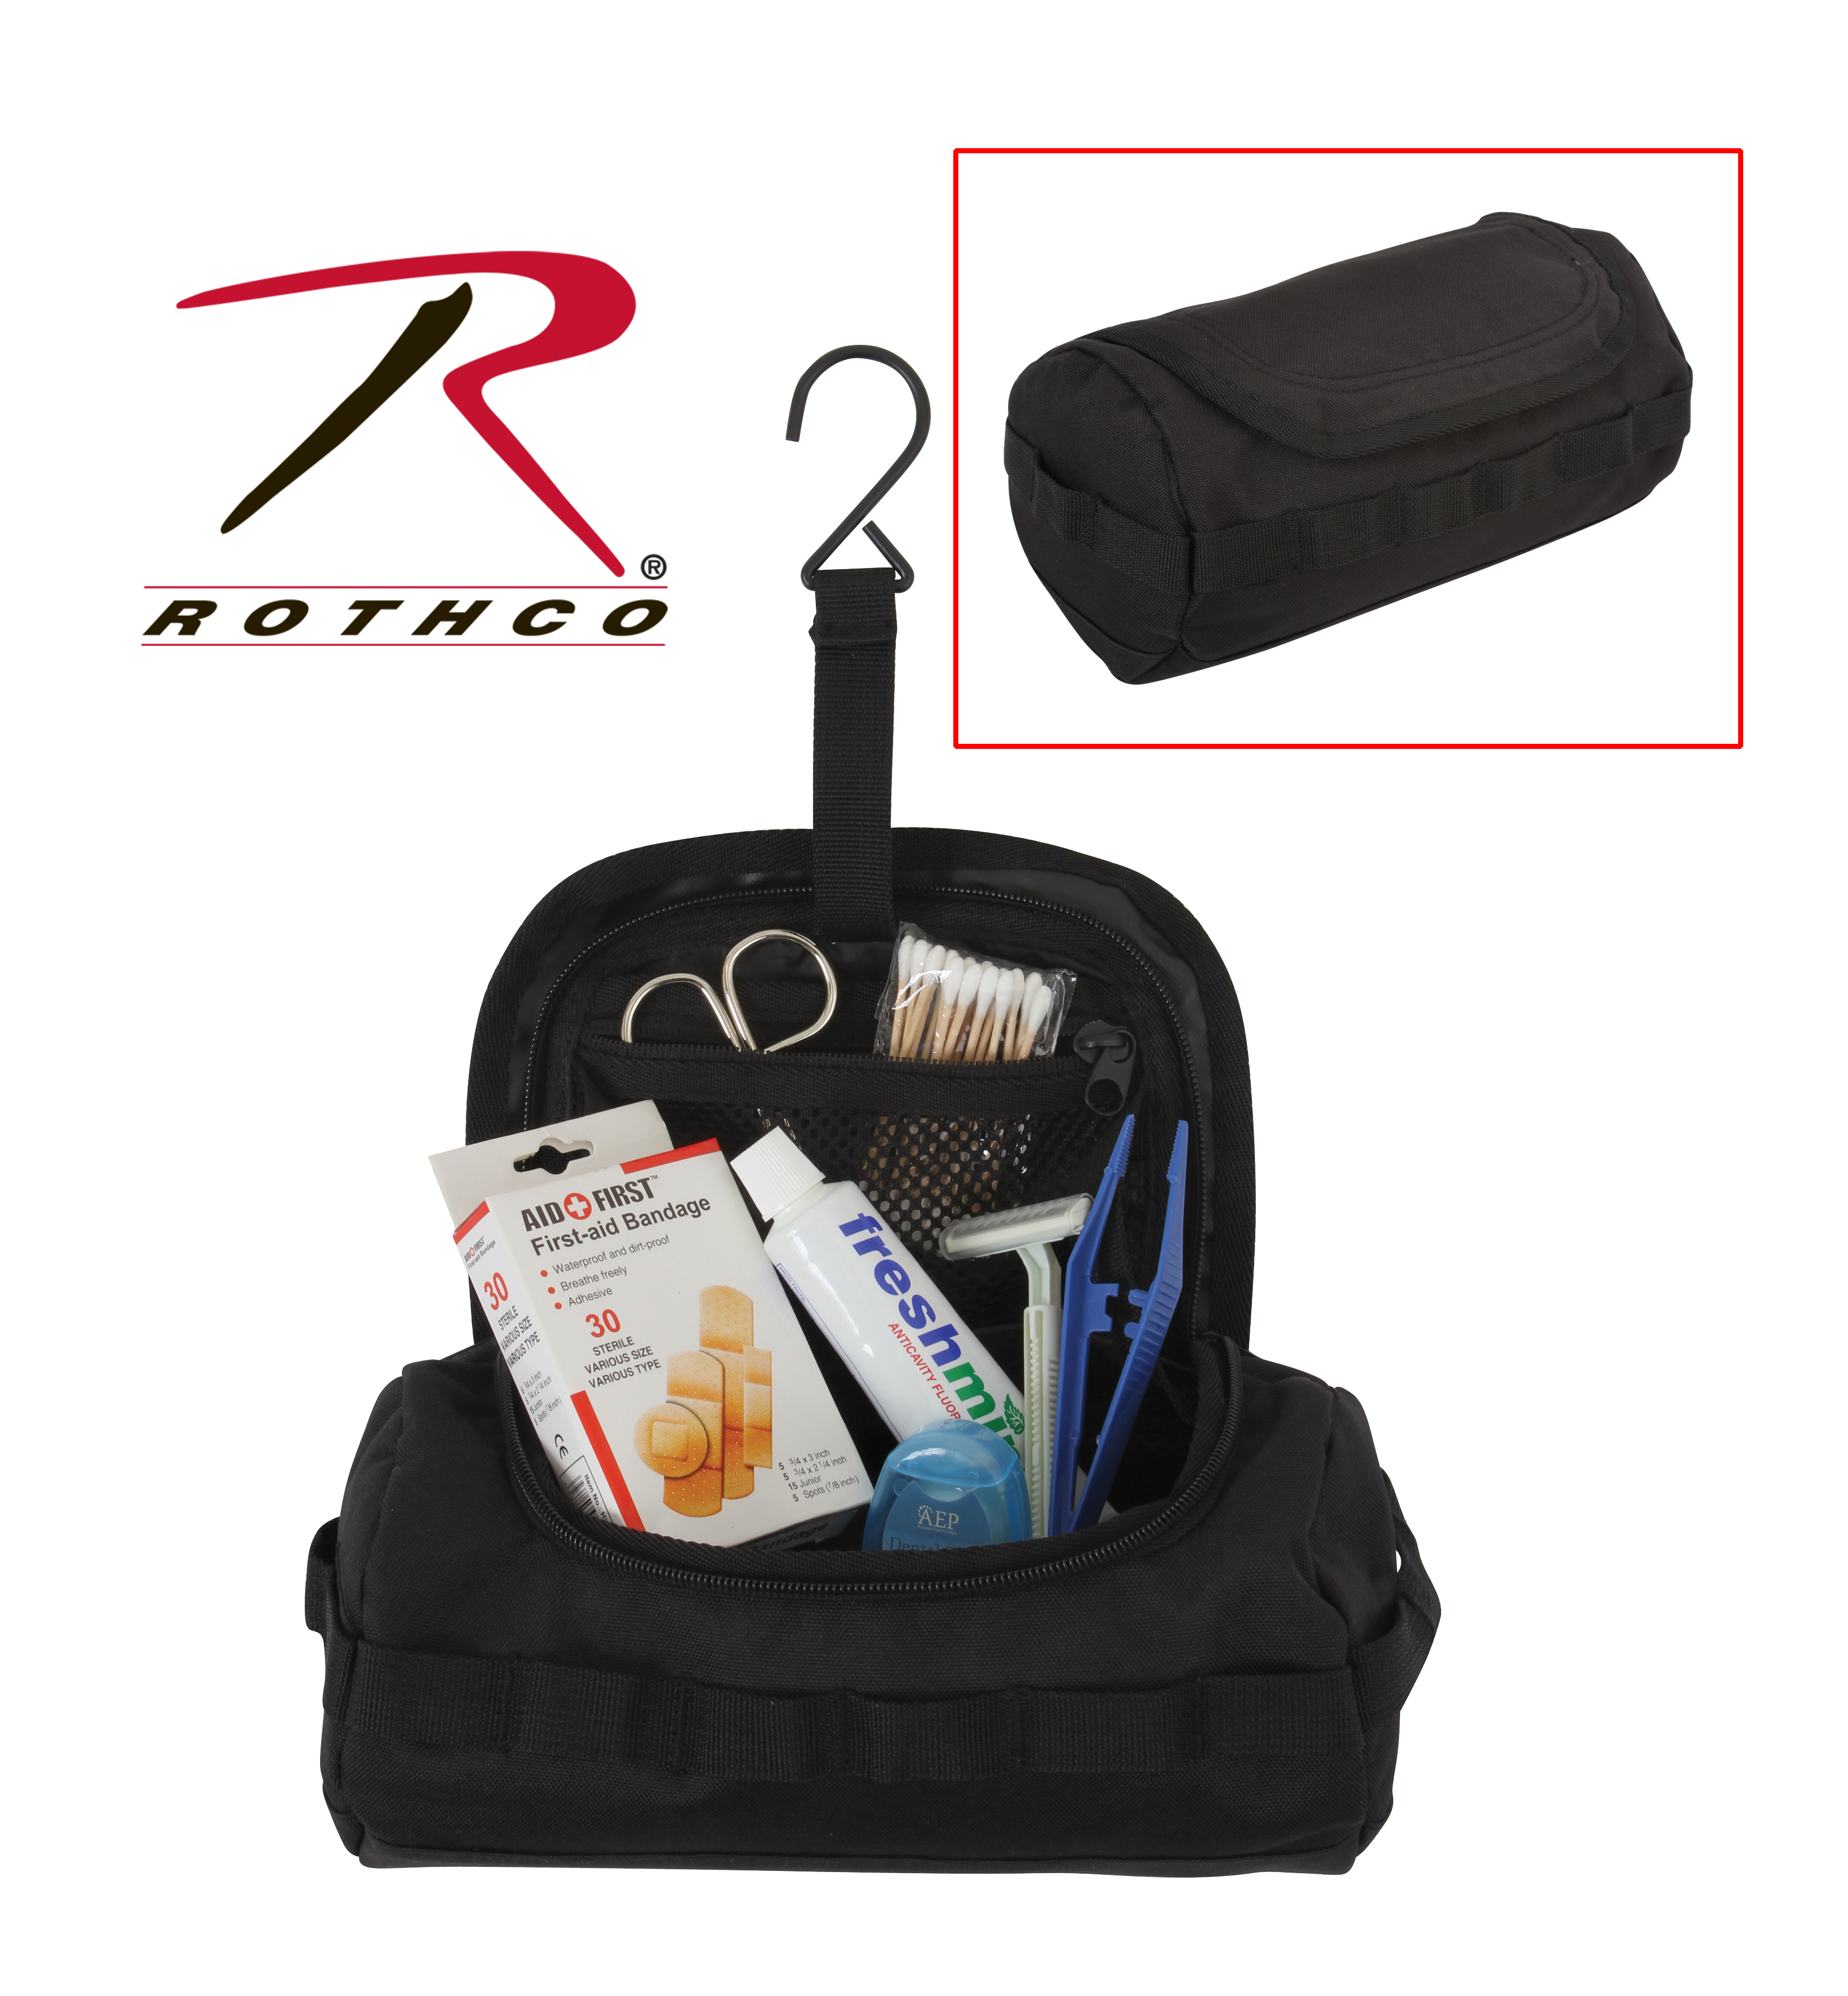 tactical toiletry kit  toiletry kits  kits  makeup kits  bathroom kits  tactical. Rothco Canvas  amp  Leather Travel Kit